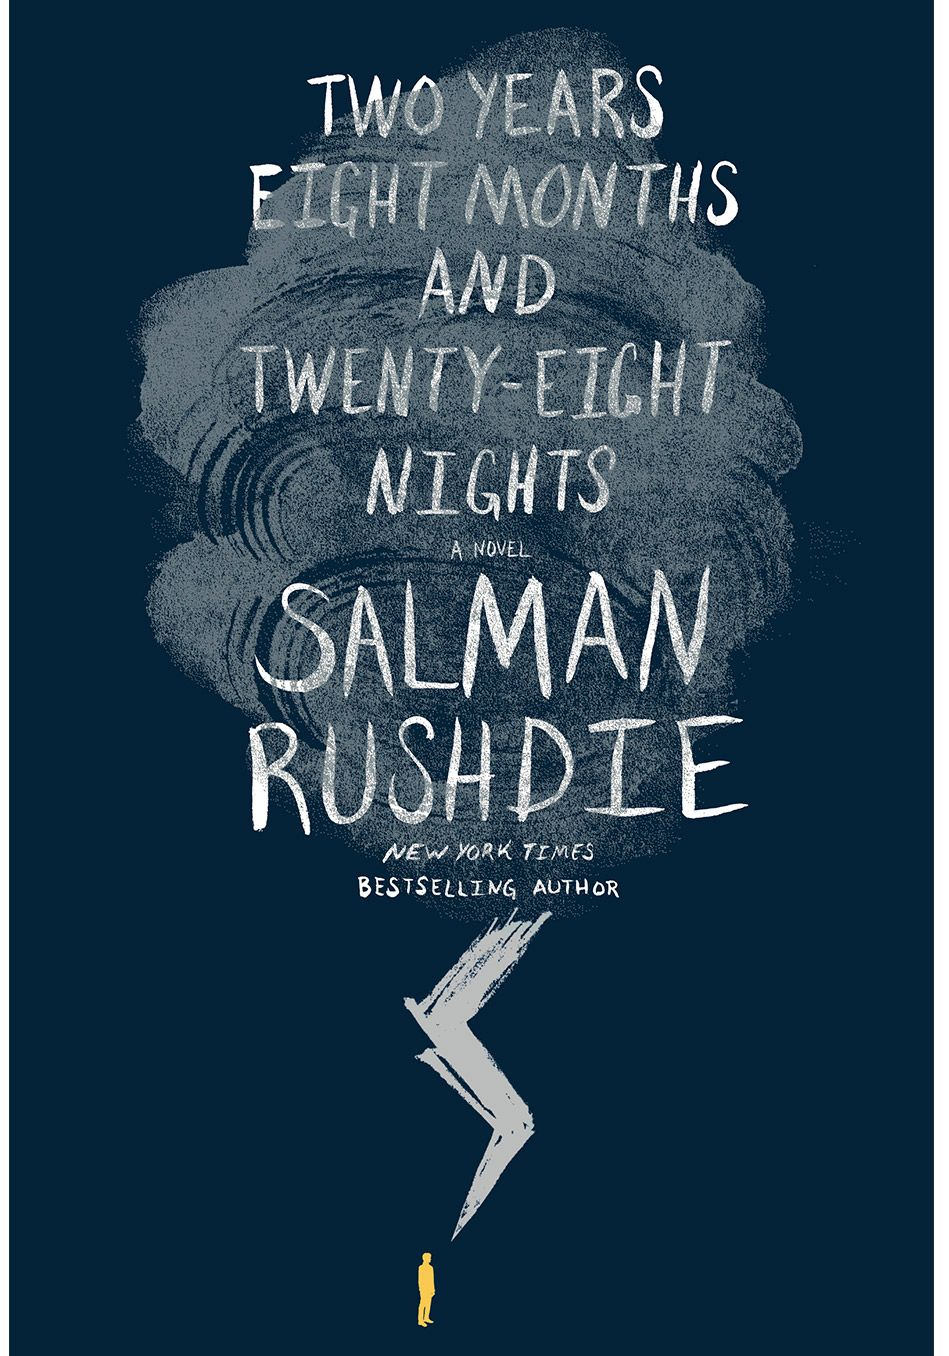 Salman Rushdie's exuberant new work, Two Years Eight Months and Twenty-Eight Nights, a retelling of what we know as The Arabian Nights, opens with a romance between a 12th-century Spanish doctor and Dunia, a female jinn (a.k.a. genie)—a union that spawns hordes of children who scatter across continents and into the future.